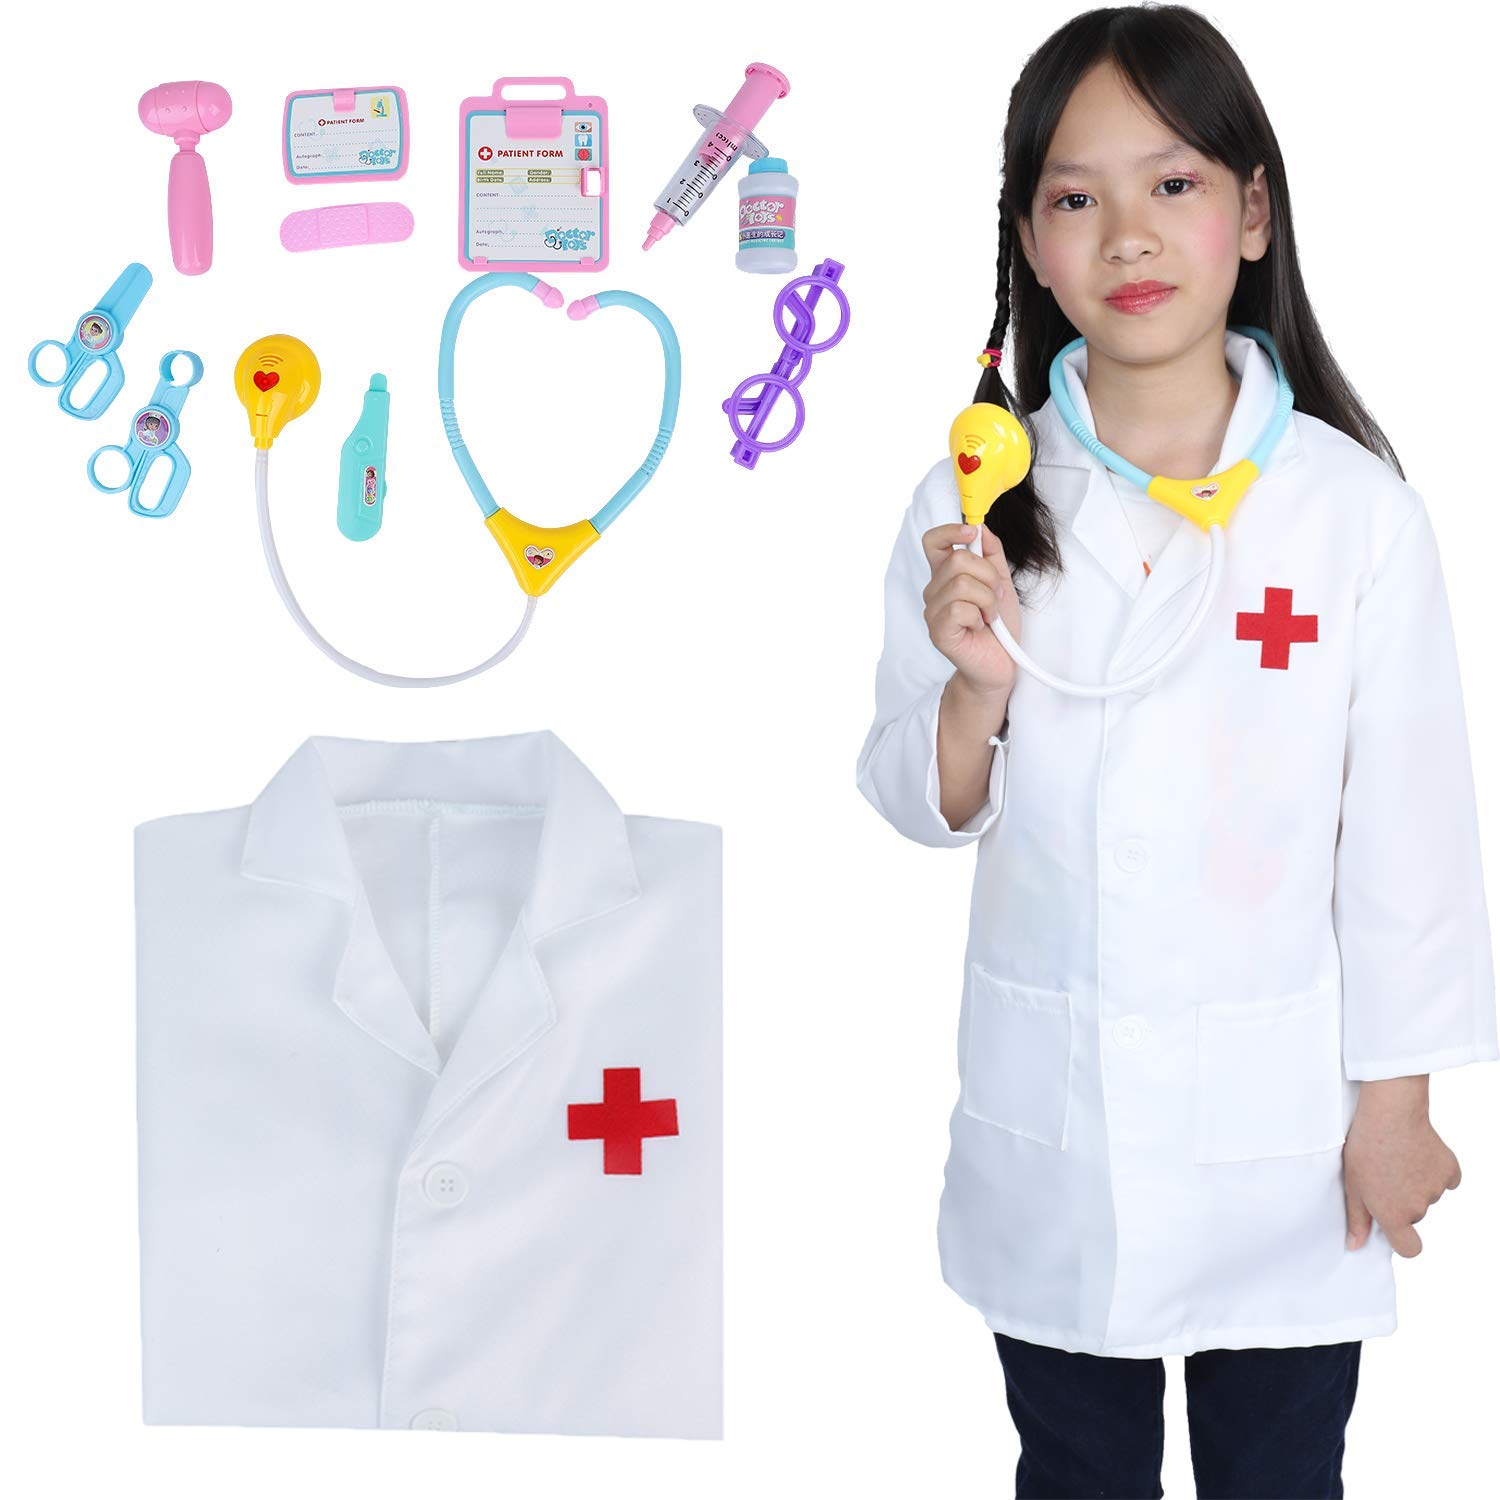 Children 12 Piece Dress up kit Learning Resources Lab Uniform Medical Doctor/Nurse Play Set for Unisex Kids (White) Without Cap by Huang Cheng Toys